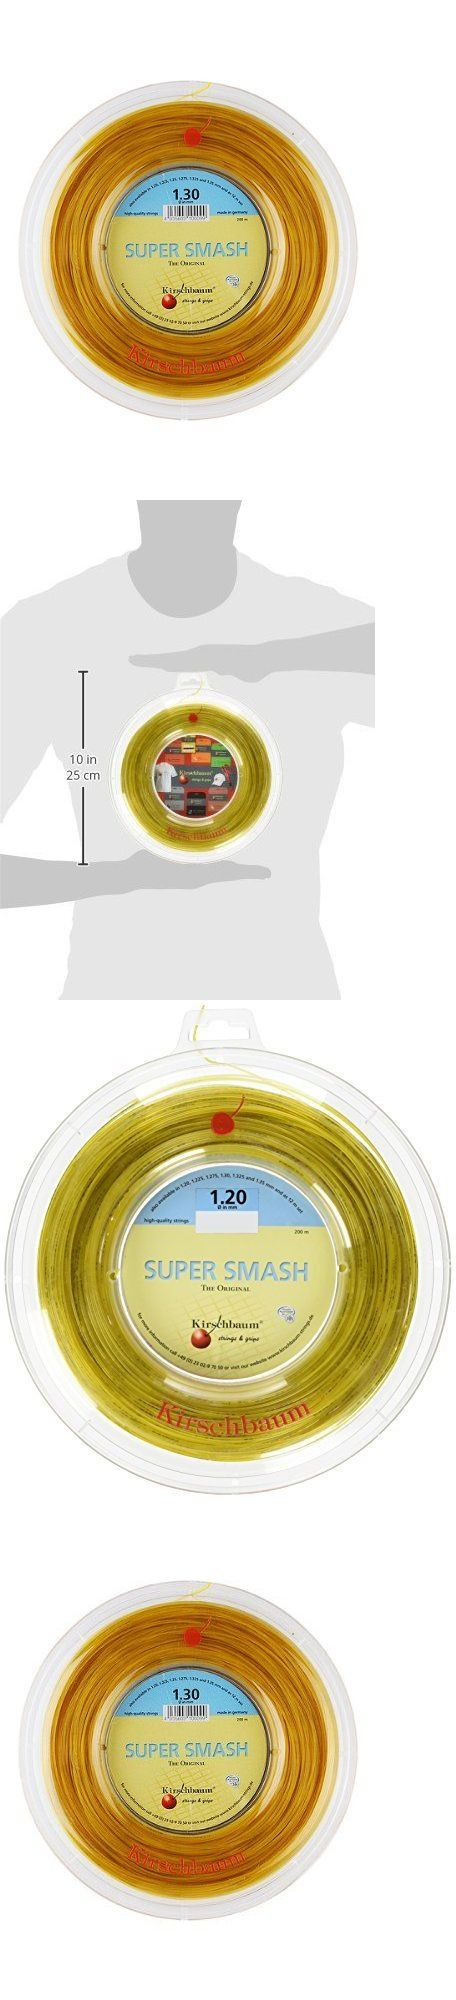 Other Racquet Sport Accs 159161: Kirschbaum Reel Super Smash Tennis String Optic Yellow 1.30Mm 16-Gauge, New -> BUY IT NOW ONLY: $86.1 on eBay!